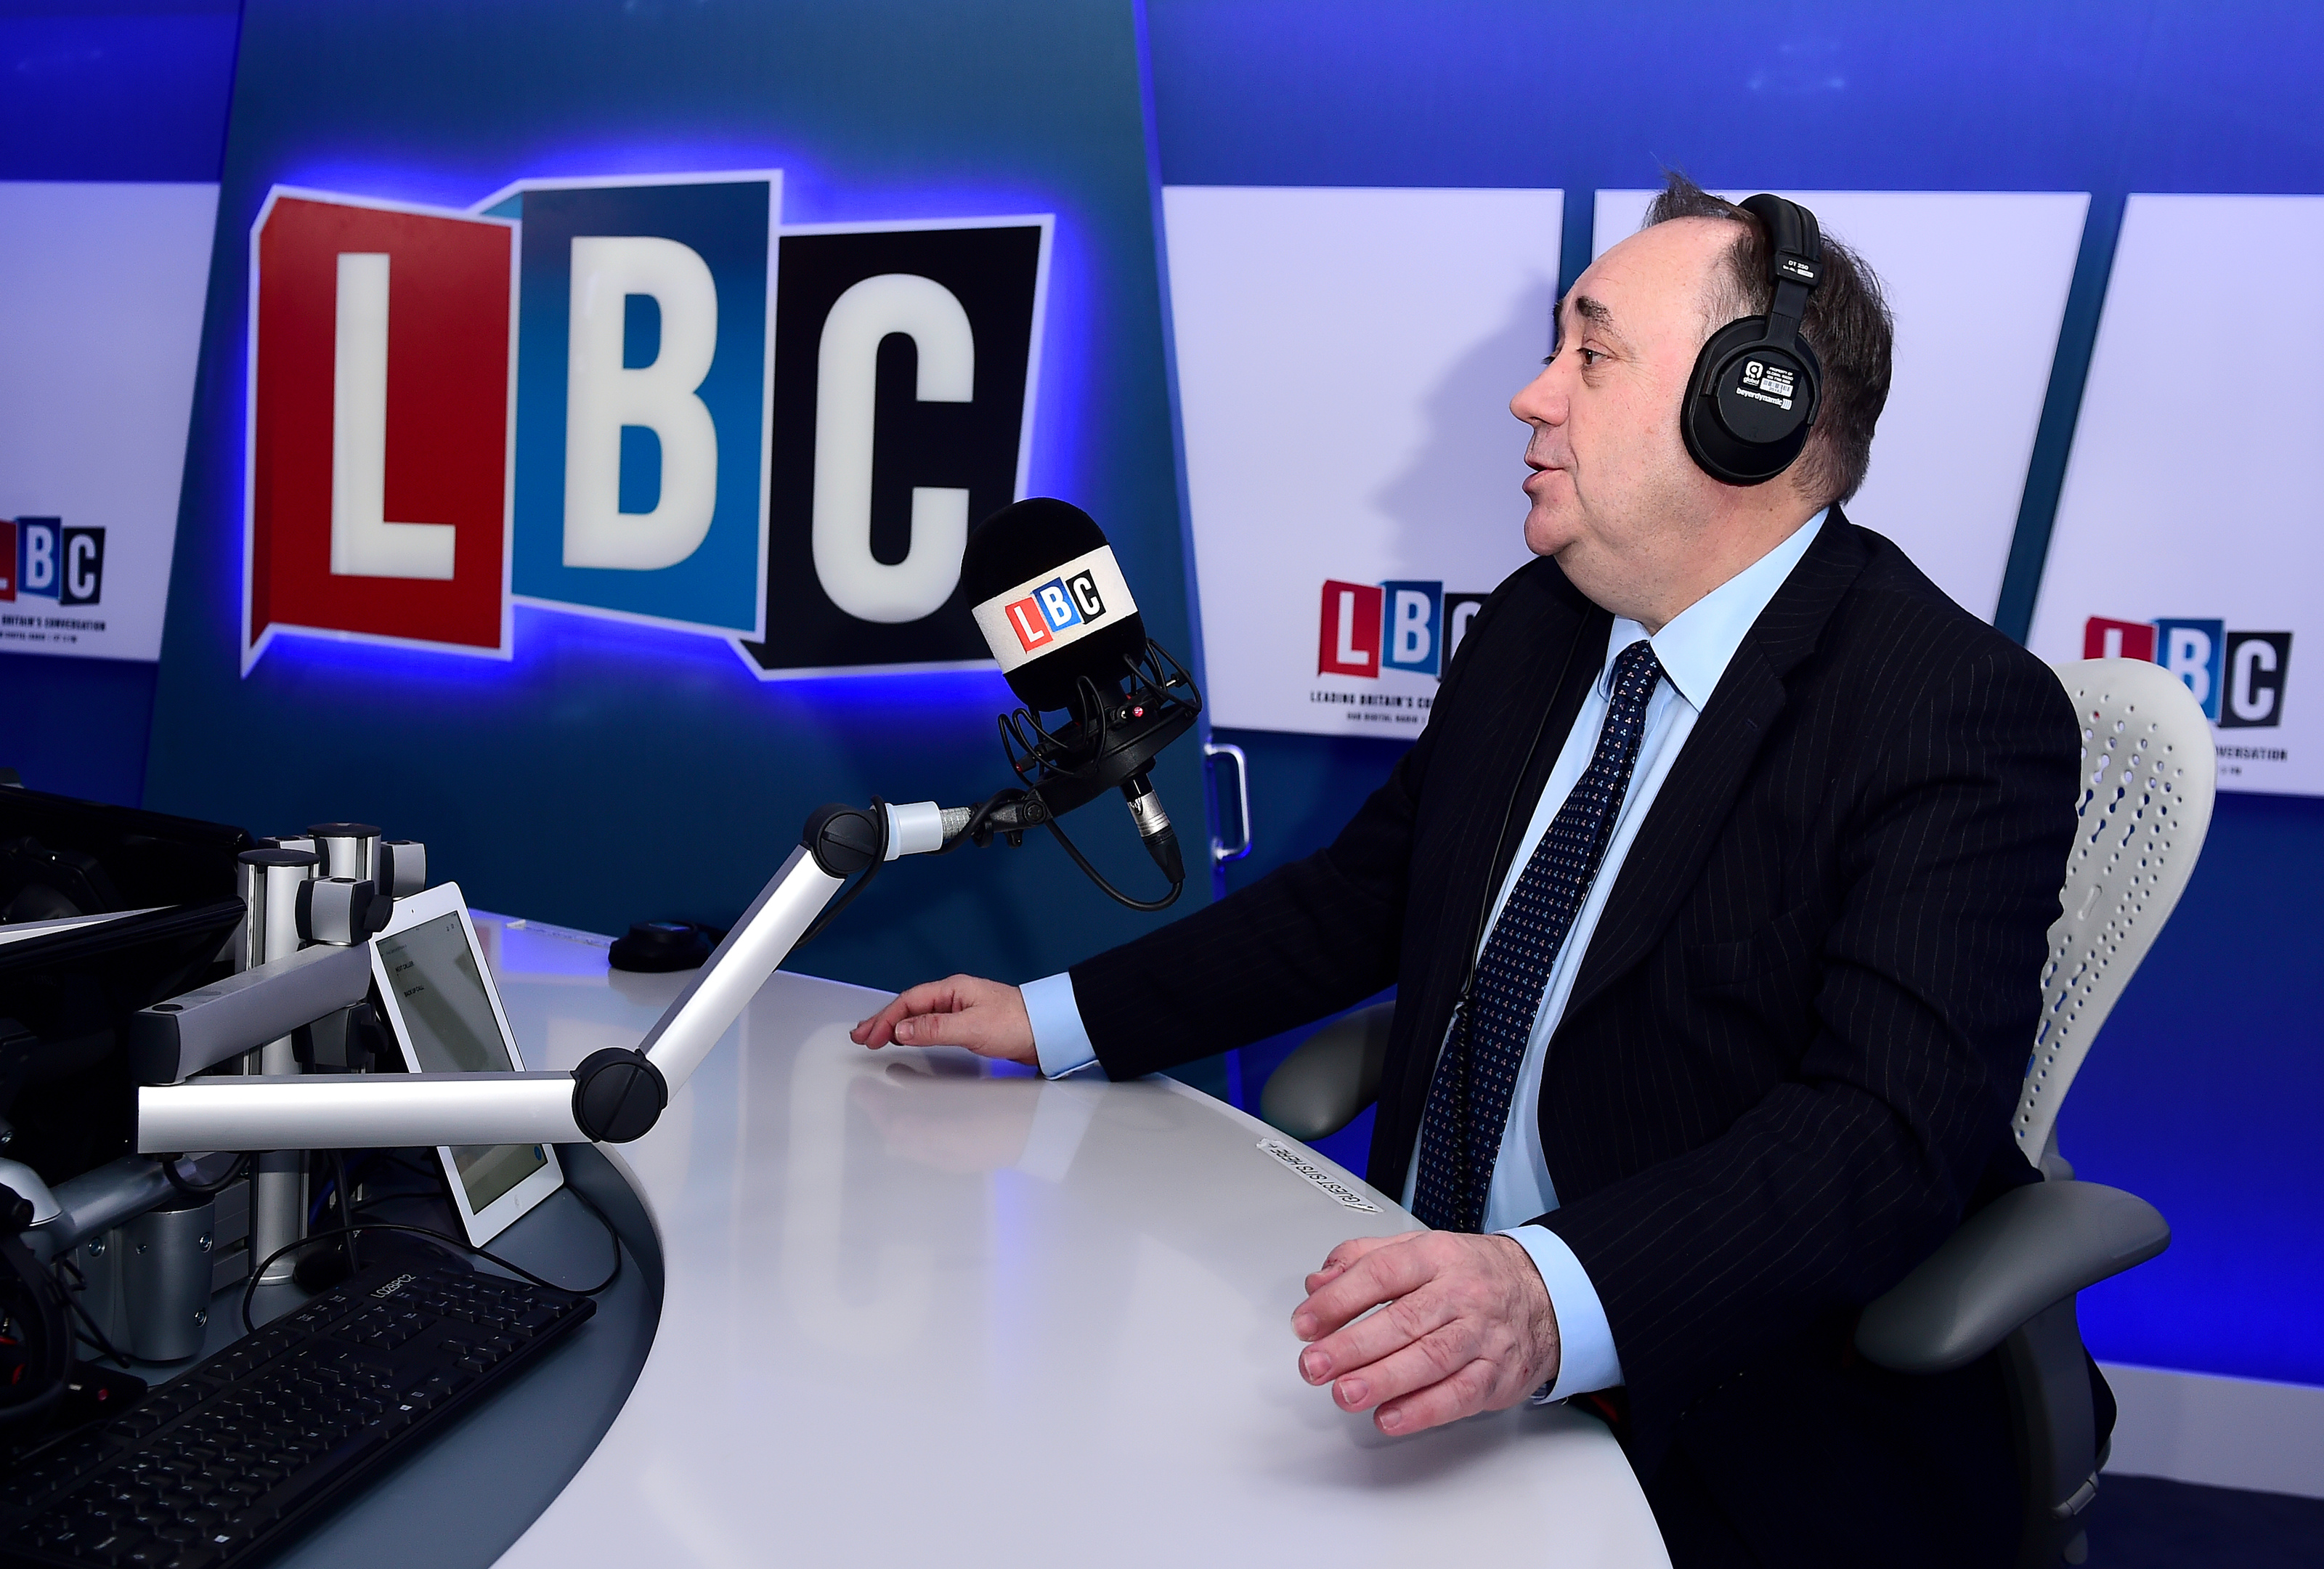 Alex Salmond takes part in his first live weekly phone-in on the national news talk radio station LBC.